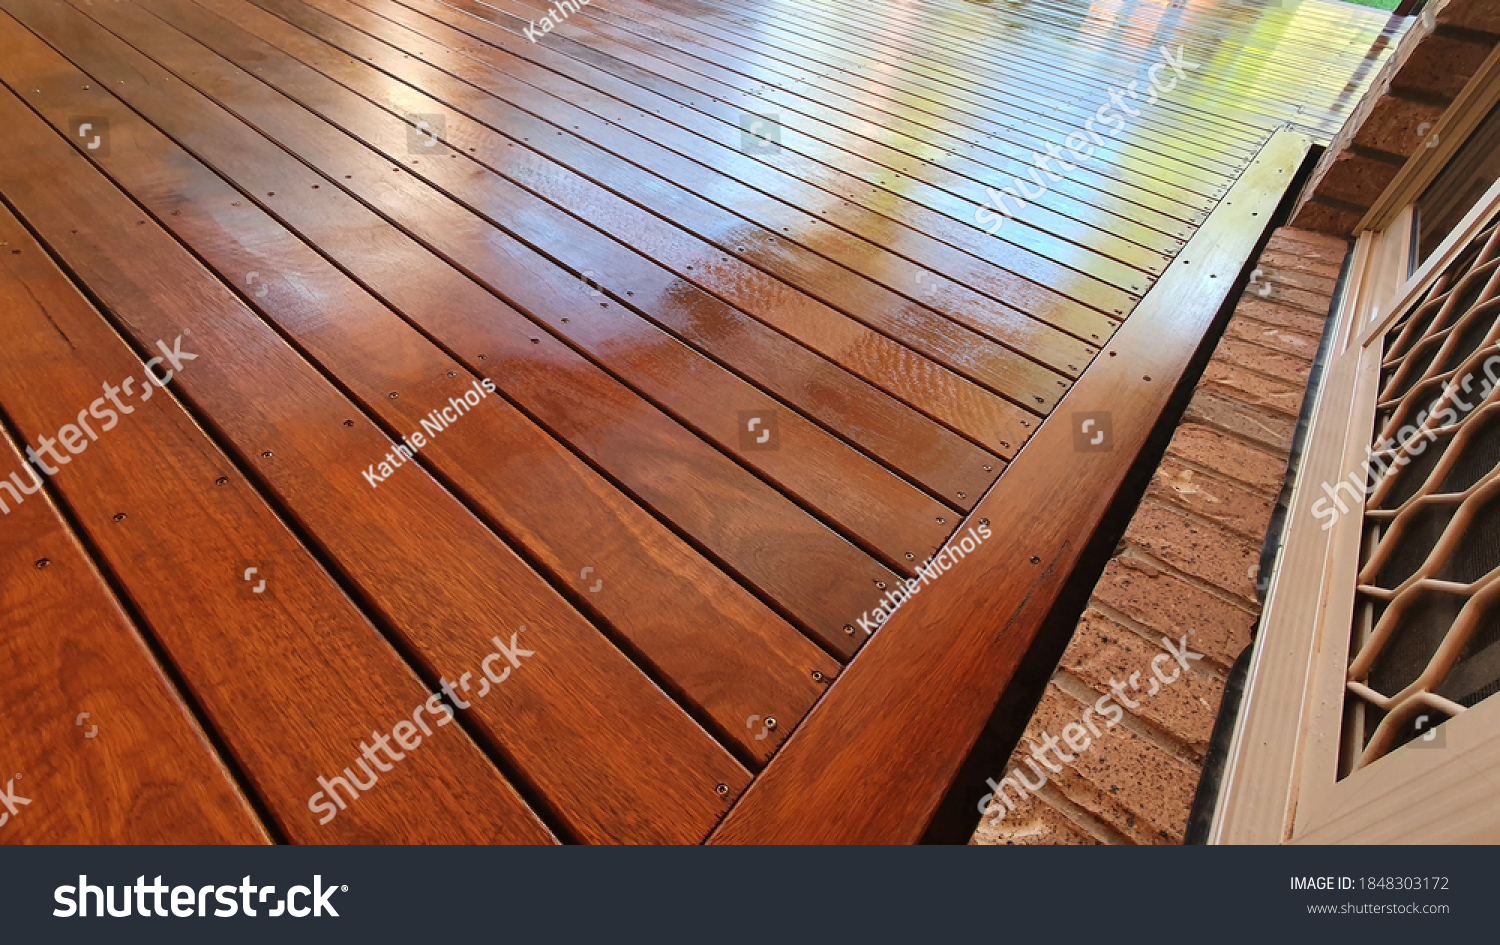 Freshly oiled Australian spotted Gum timber outdoor covered deck with Merbau stain at Residential Home, still wet and yet to dry #1848303172